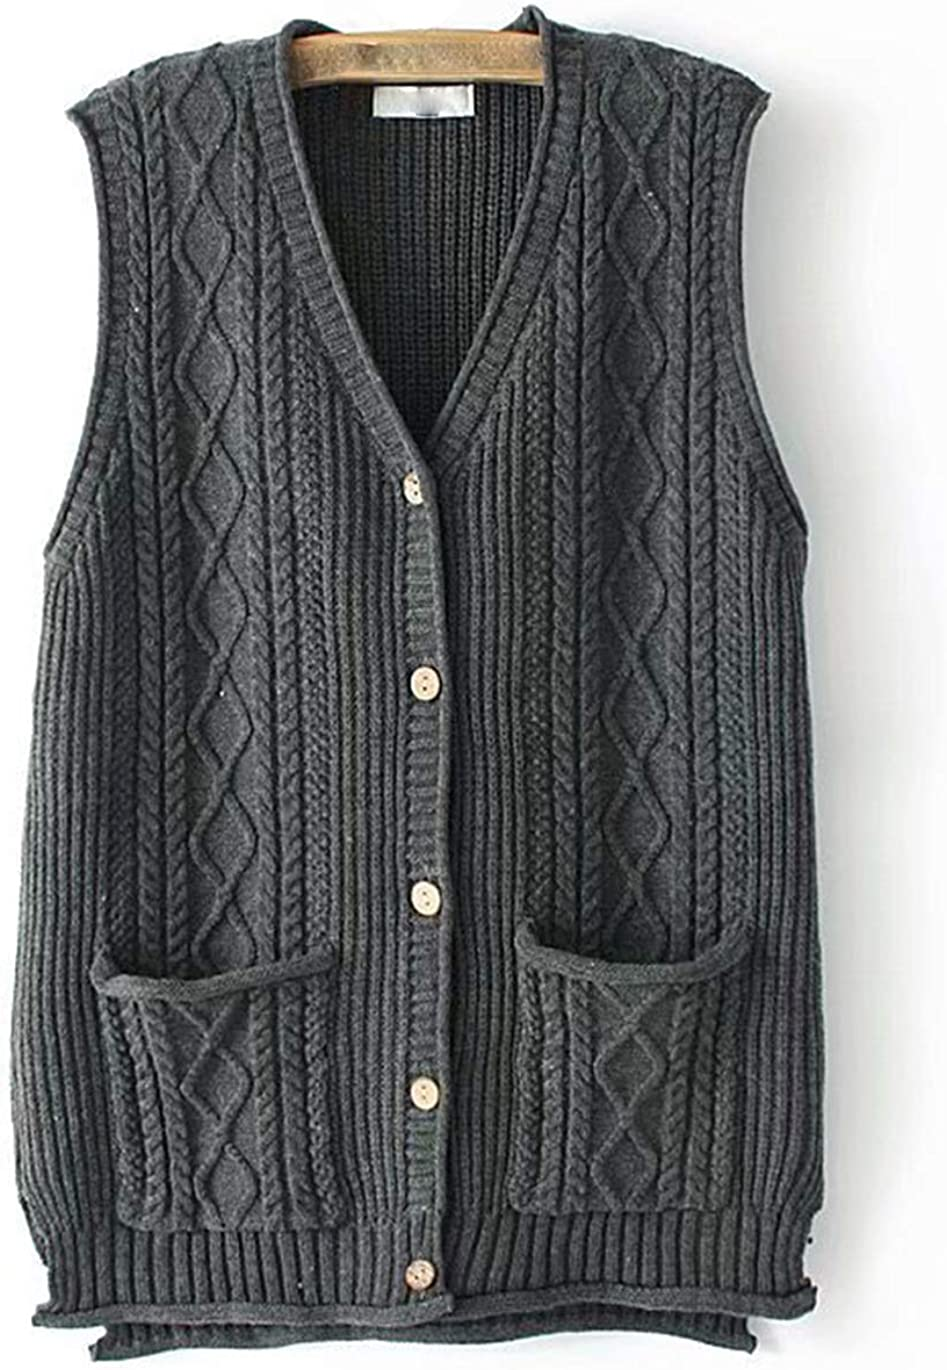 Haellun Womens Casual Loose Sweater Vest Button Down Cable Knit Cardigan Outwear